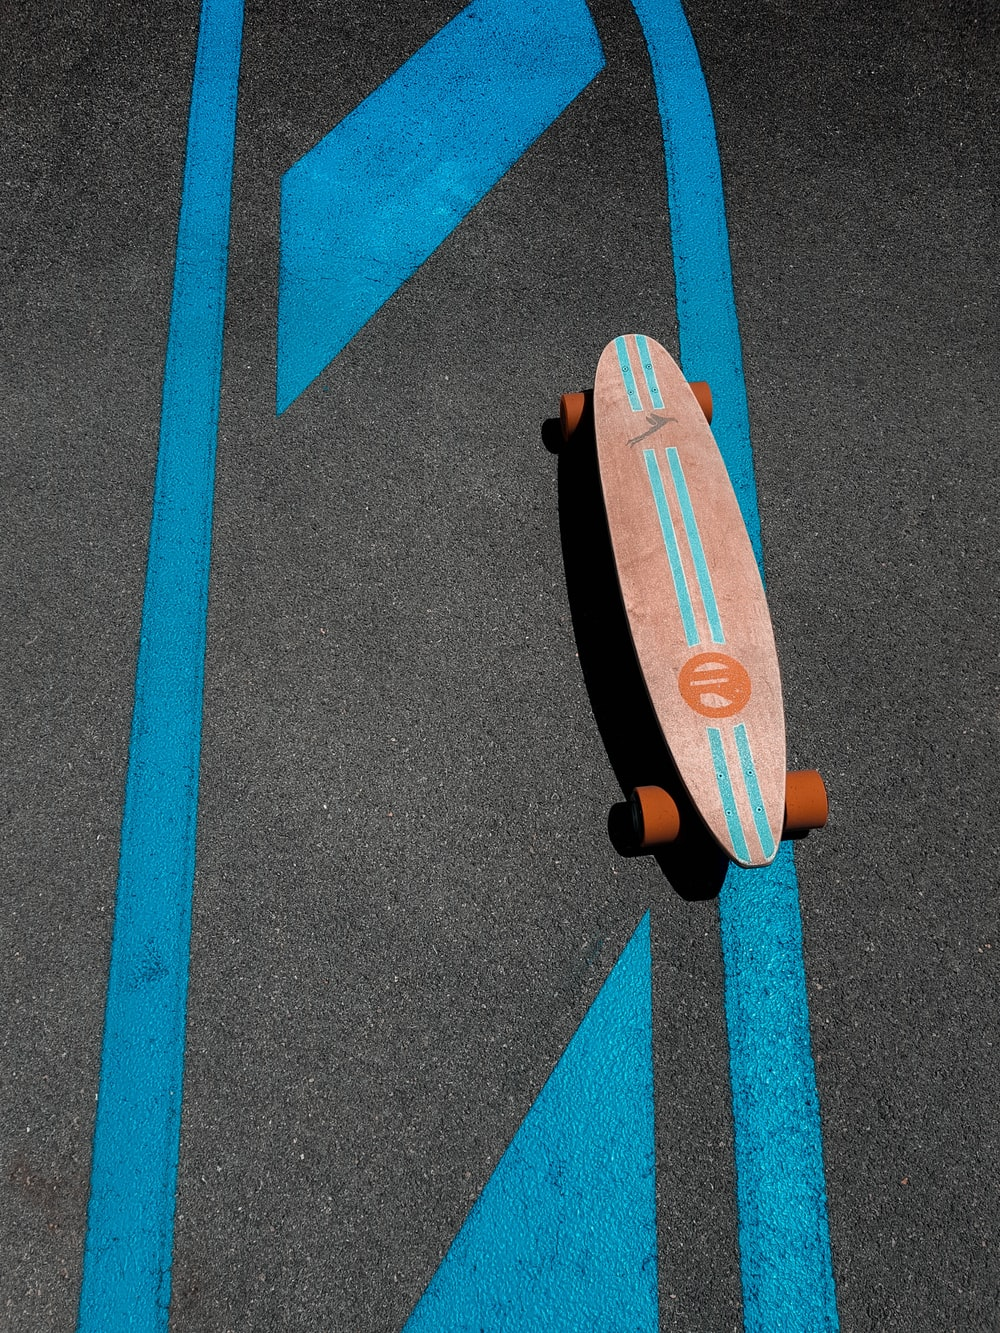 brown and orange skateboard on gray concrete road